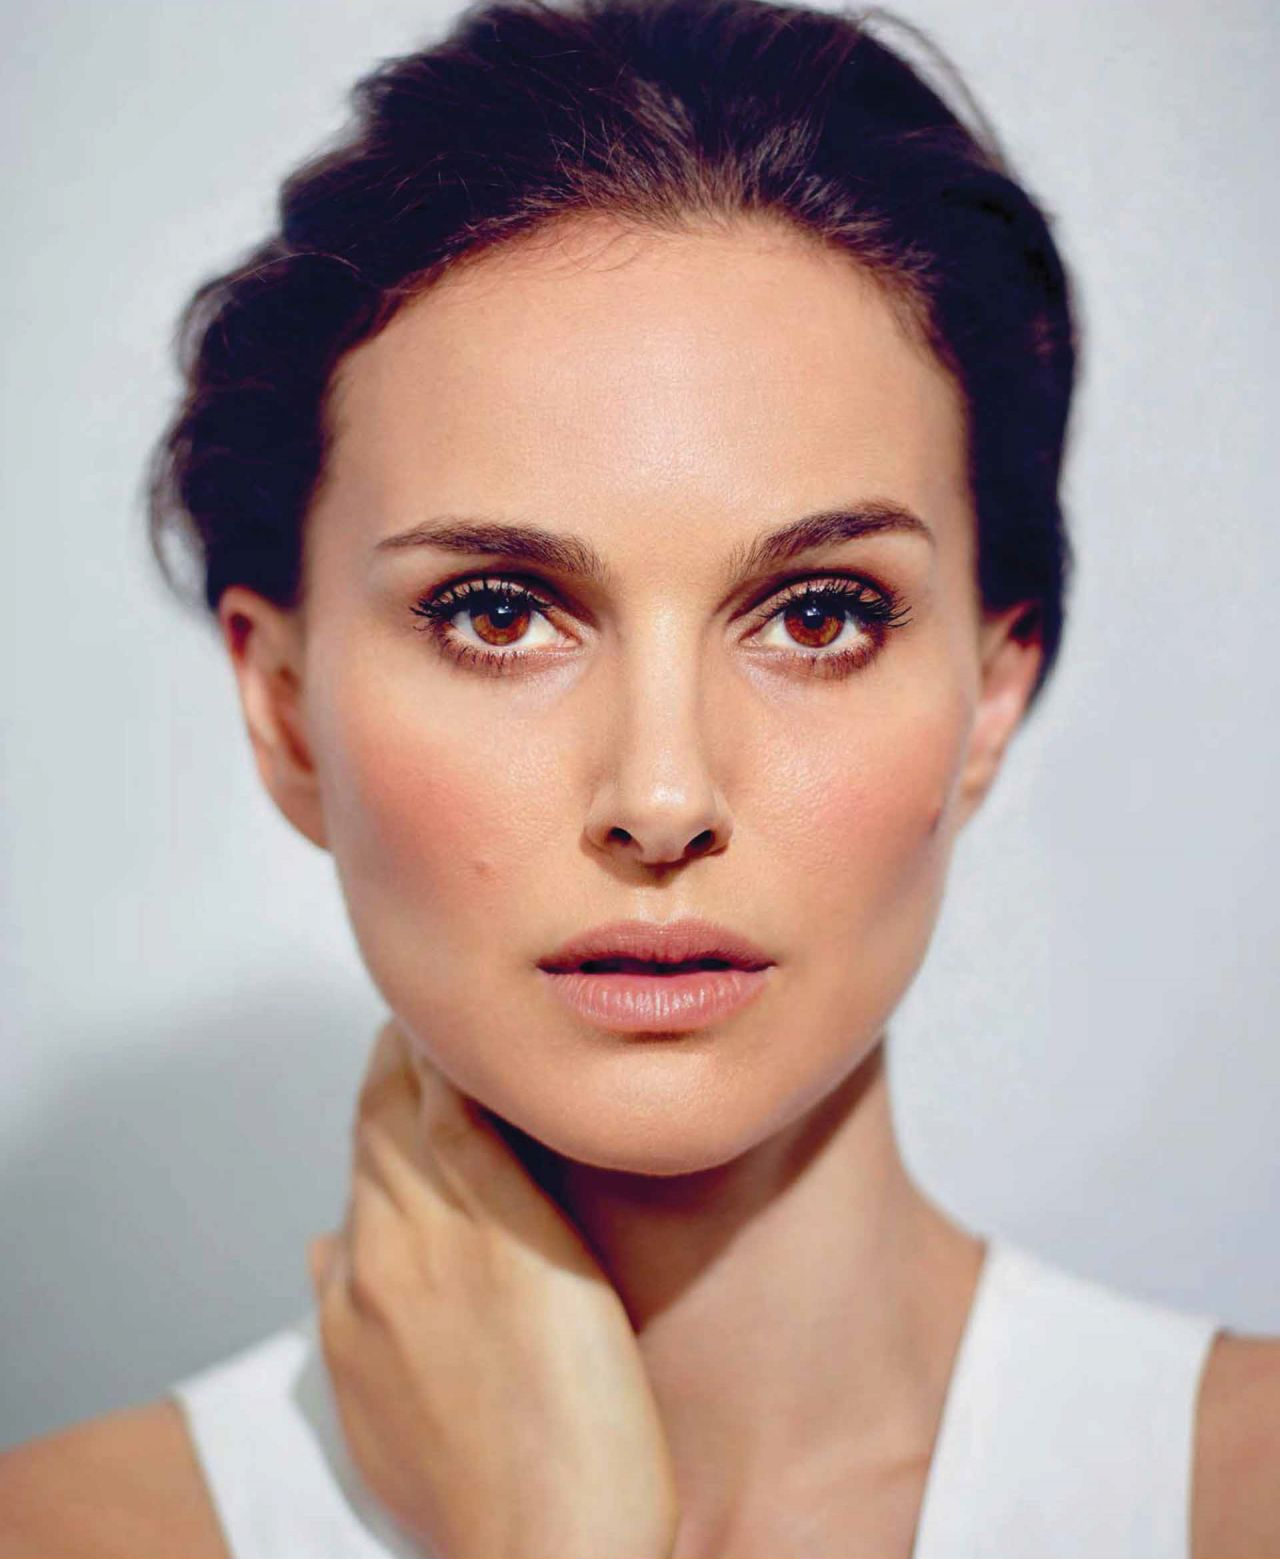 natalie portman - photo #41